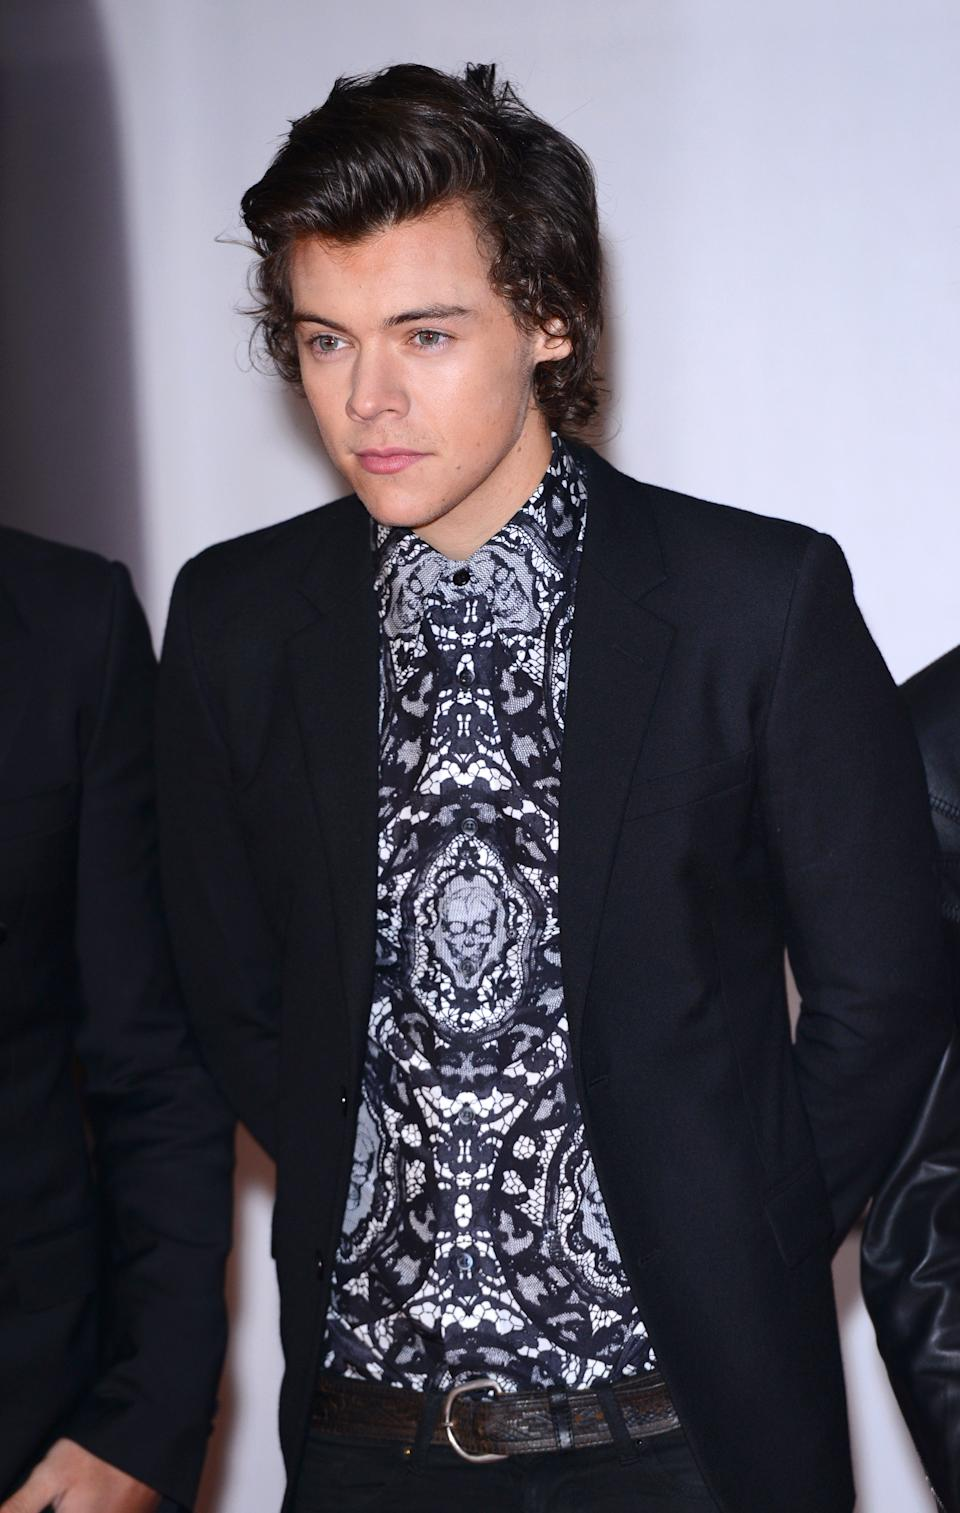 Harry Styles attends The BRIT Awards